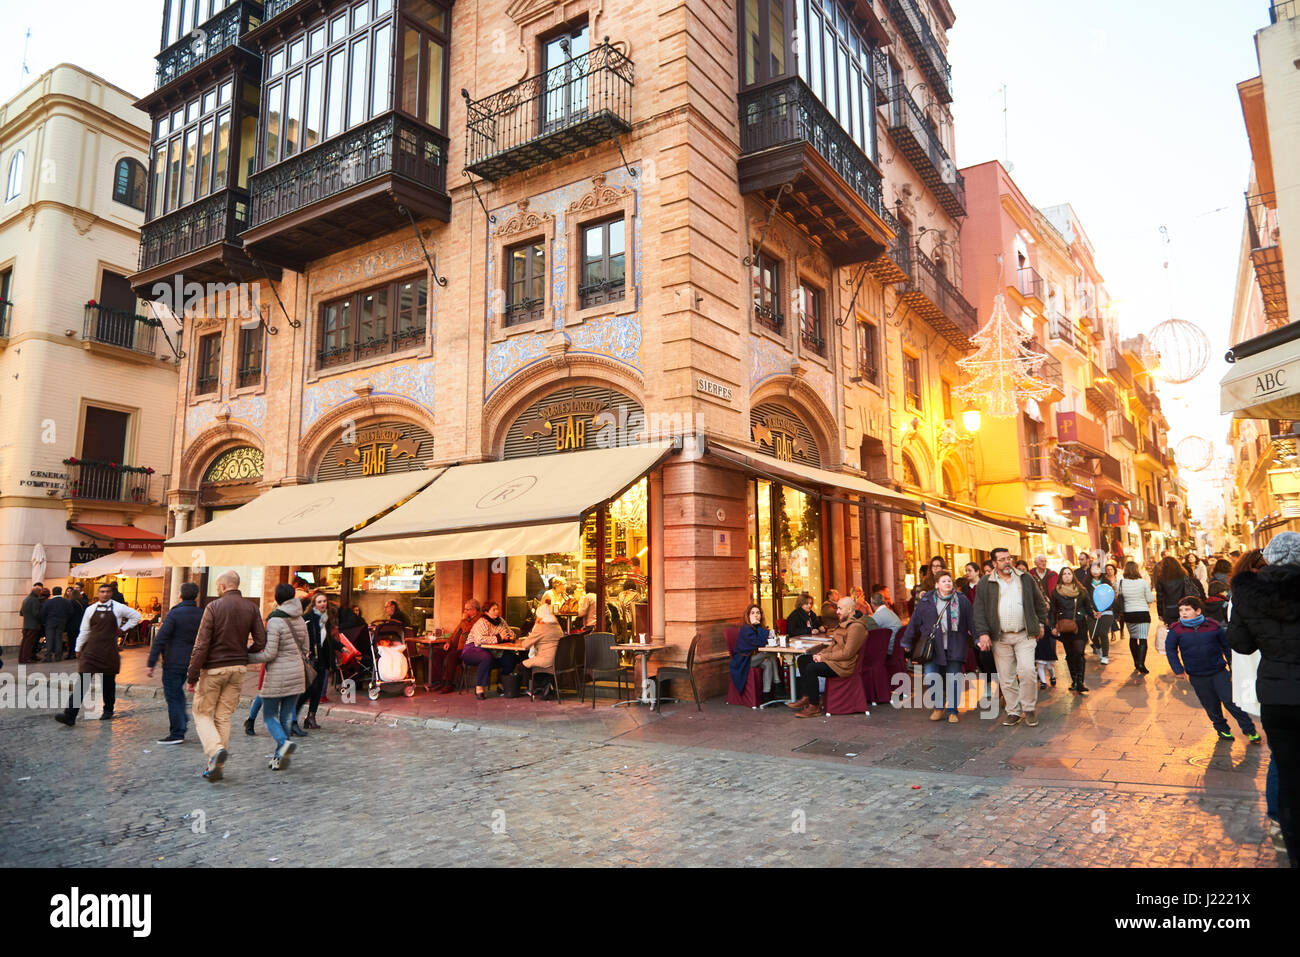 Sevilla Winkelen Sierpes Sevilla Stock Photos And Sierpes Sevilla Stock